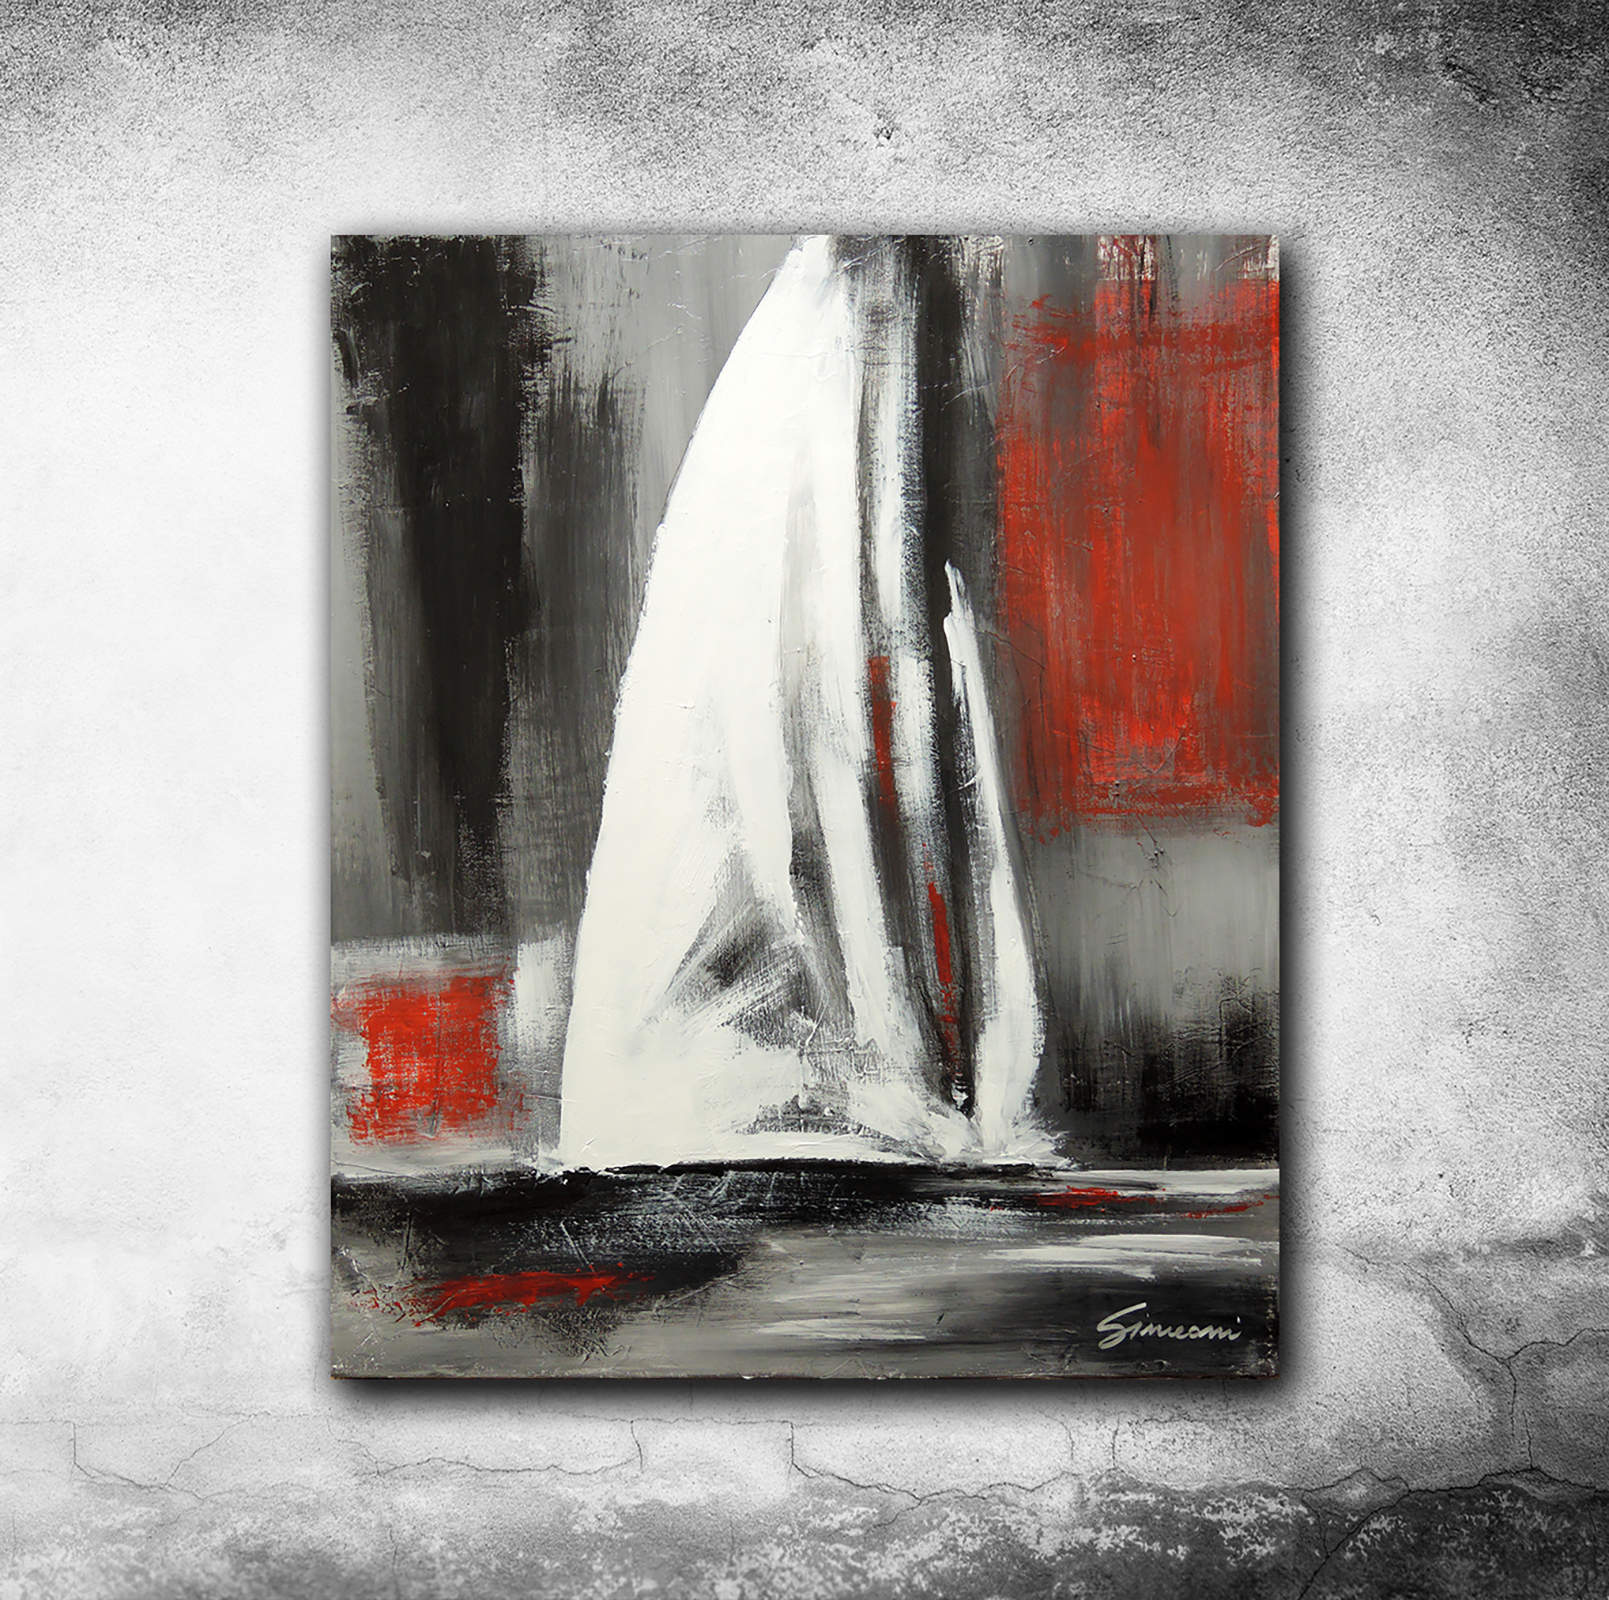 The sail in red - acrylic on canvas - cm 60x50